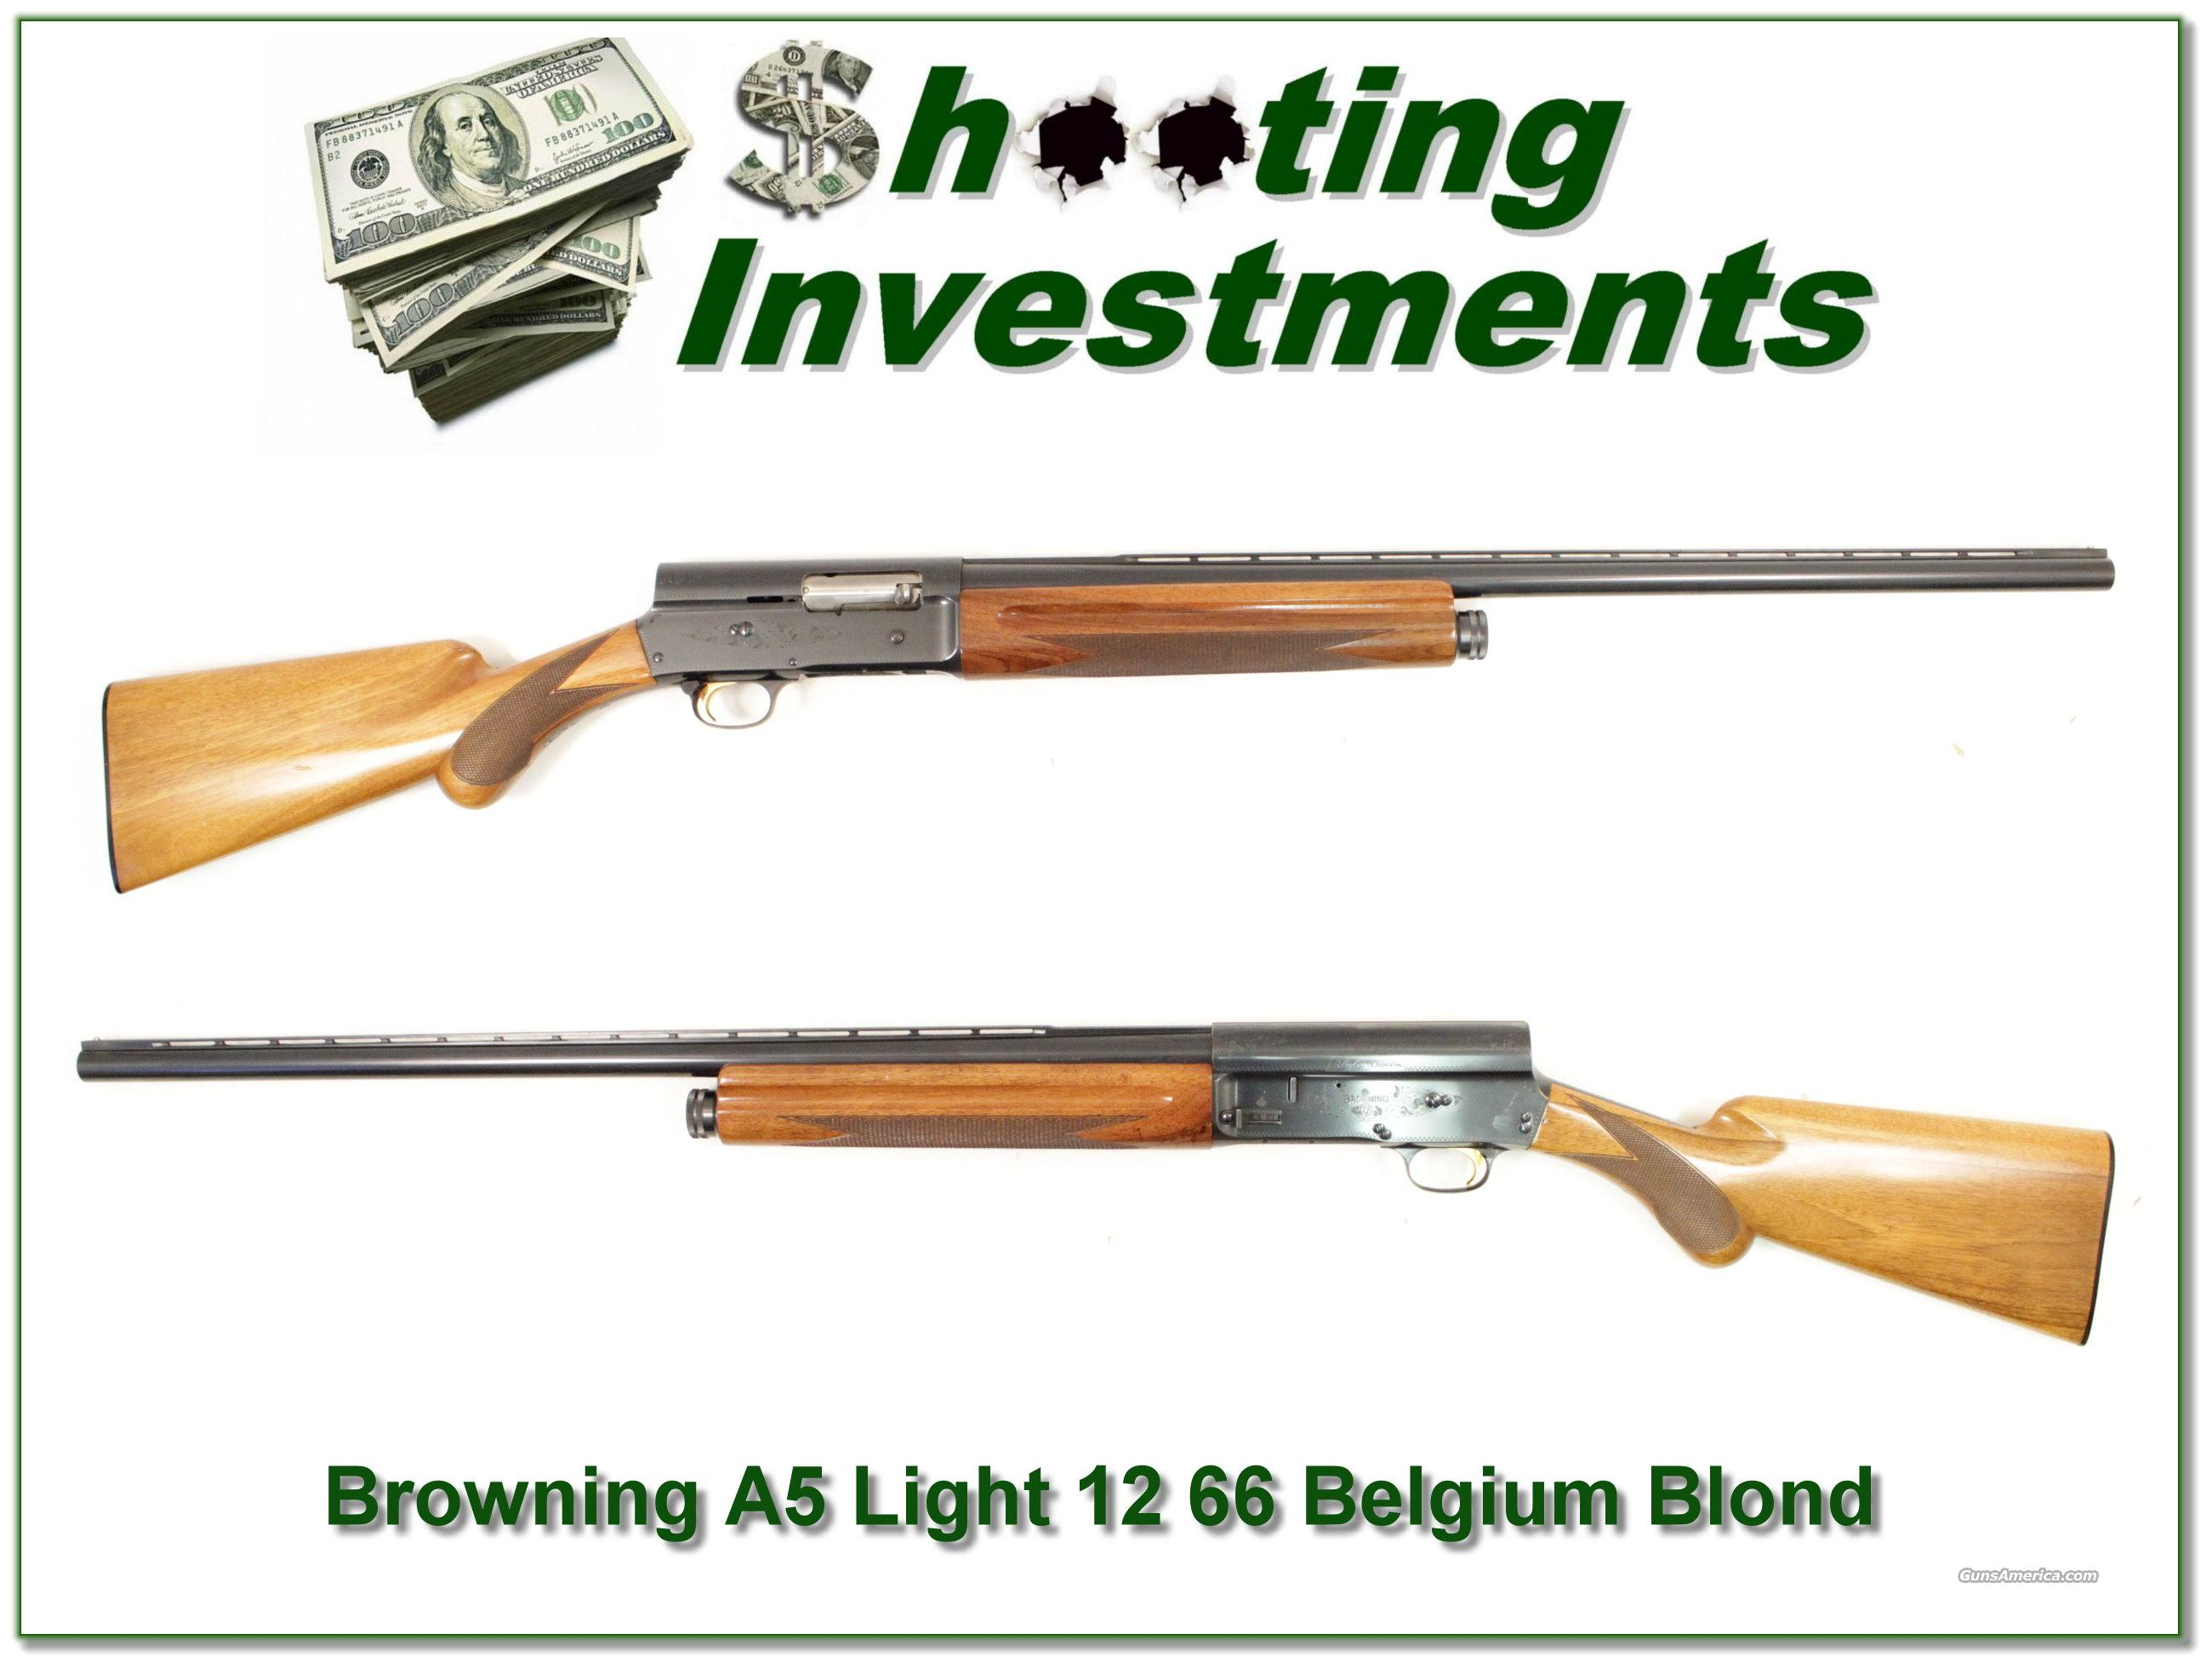 Browning A5 Light 12 66 Belgium Blond!  Guns > Shotguns > Browning Shotguns > Autoloaders > Hunting